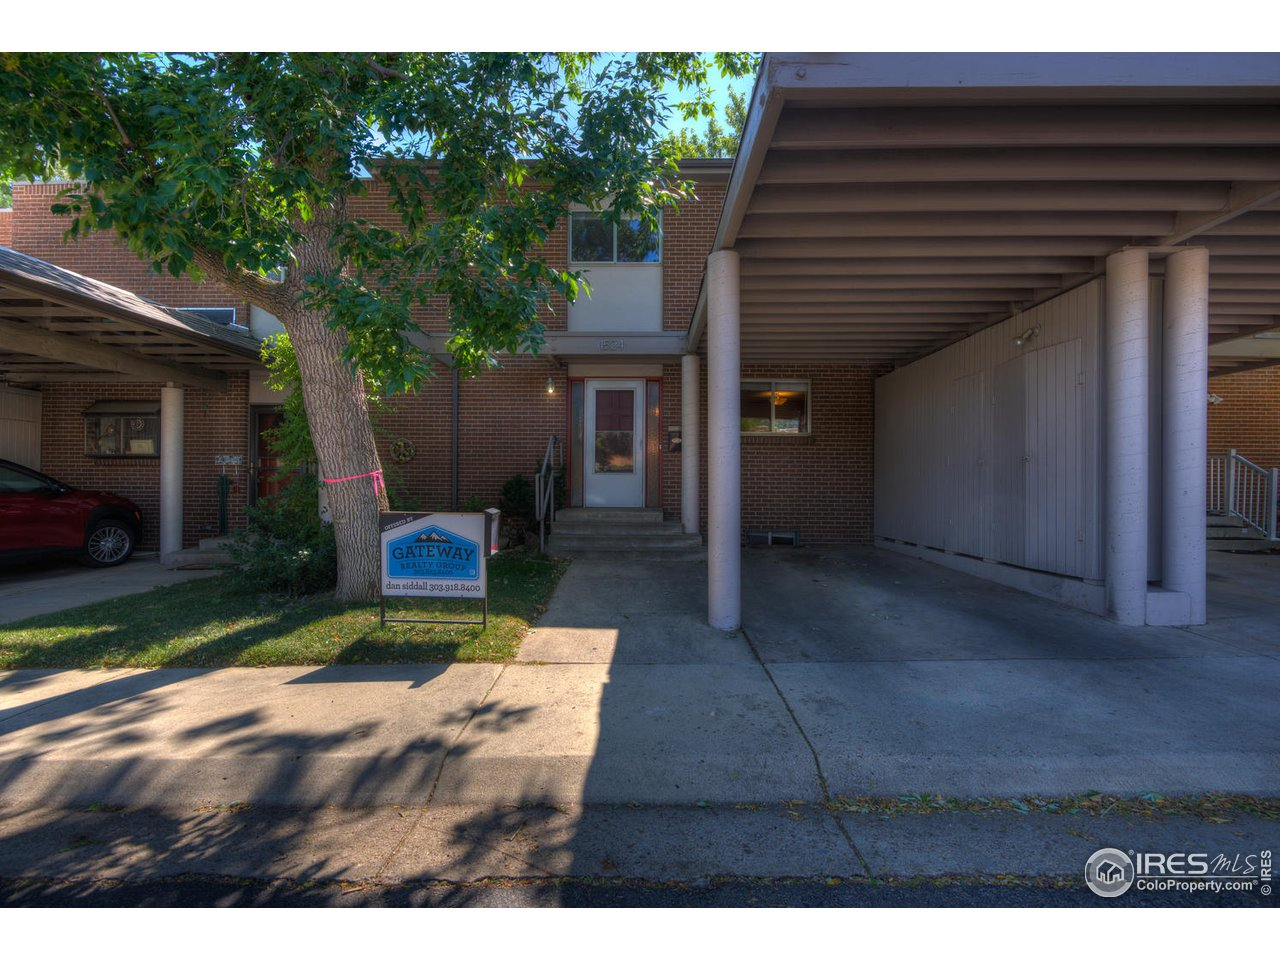 1524 Chambers Dr, Boulder CO 80305